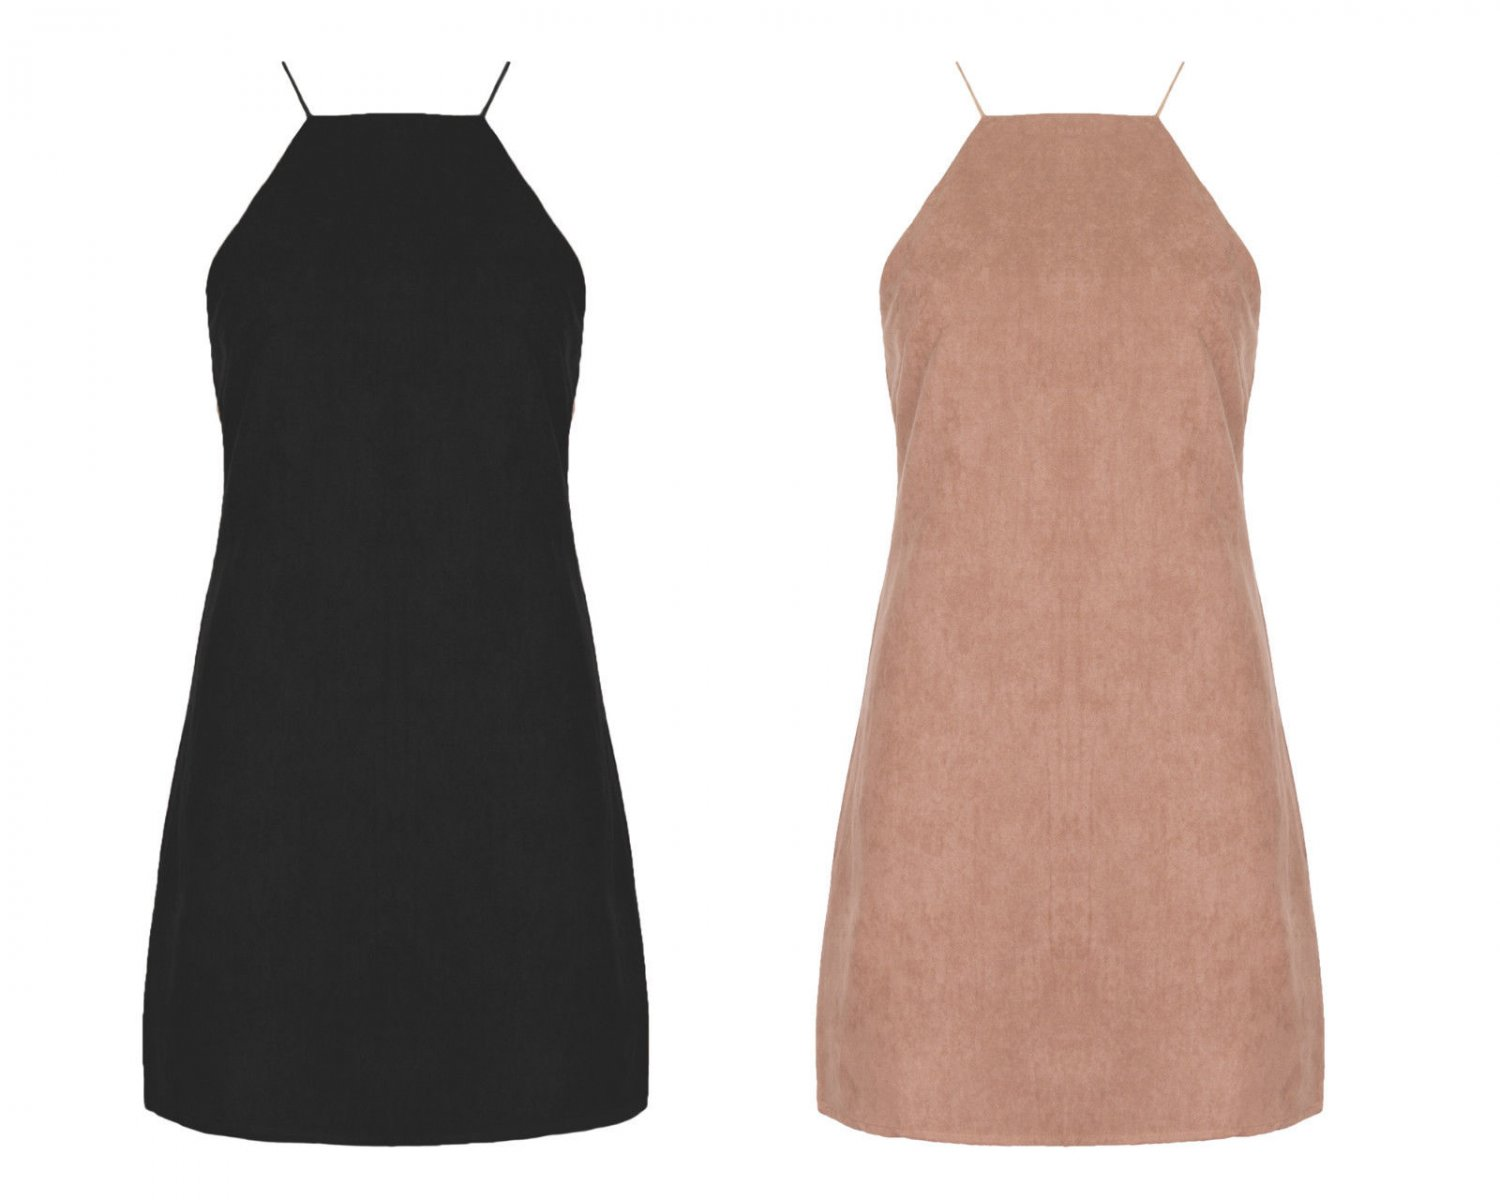 New Women Suede Mini Sexy Dress Rouleaux Straps Tunic Pinafore A Line UK Size 12 Tan